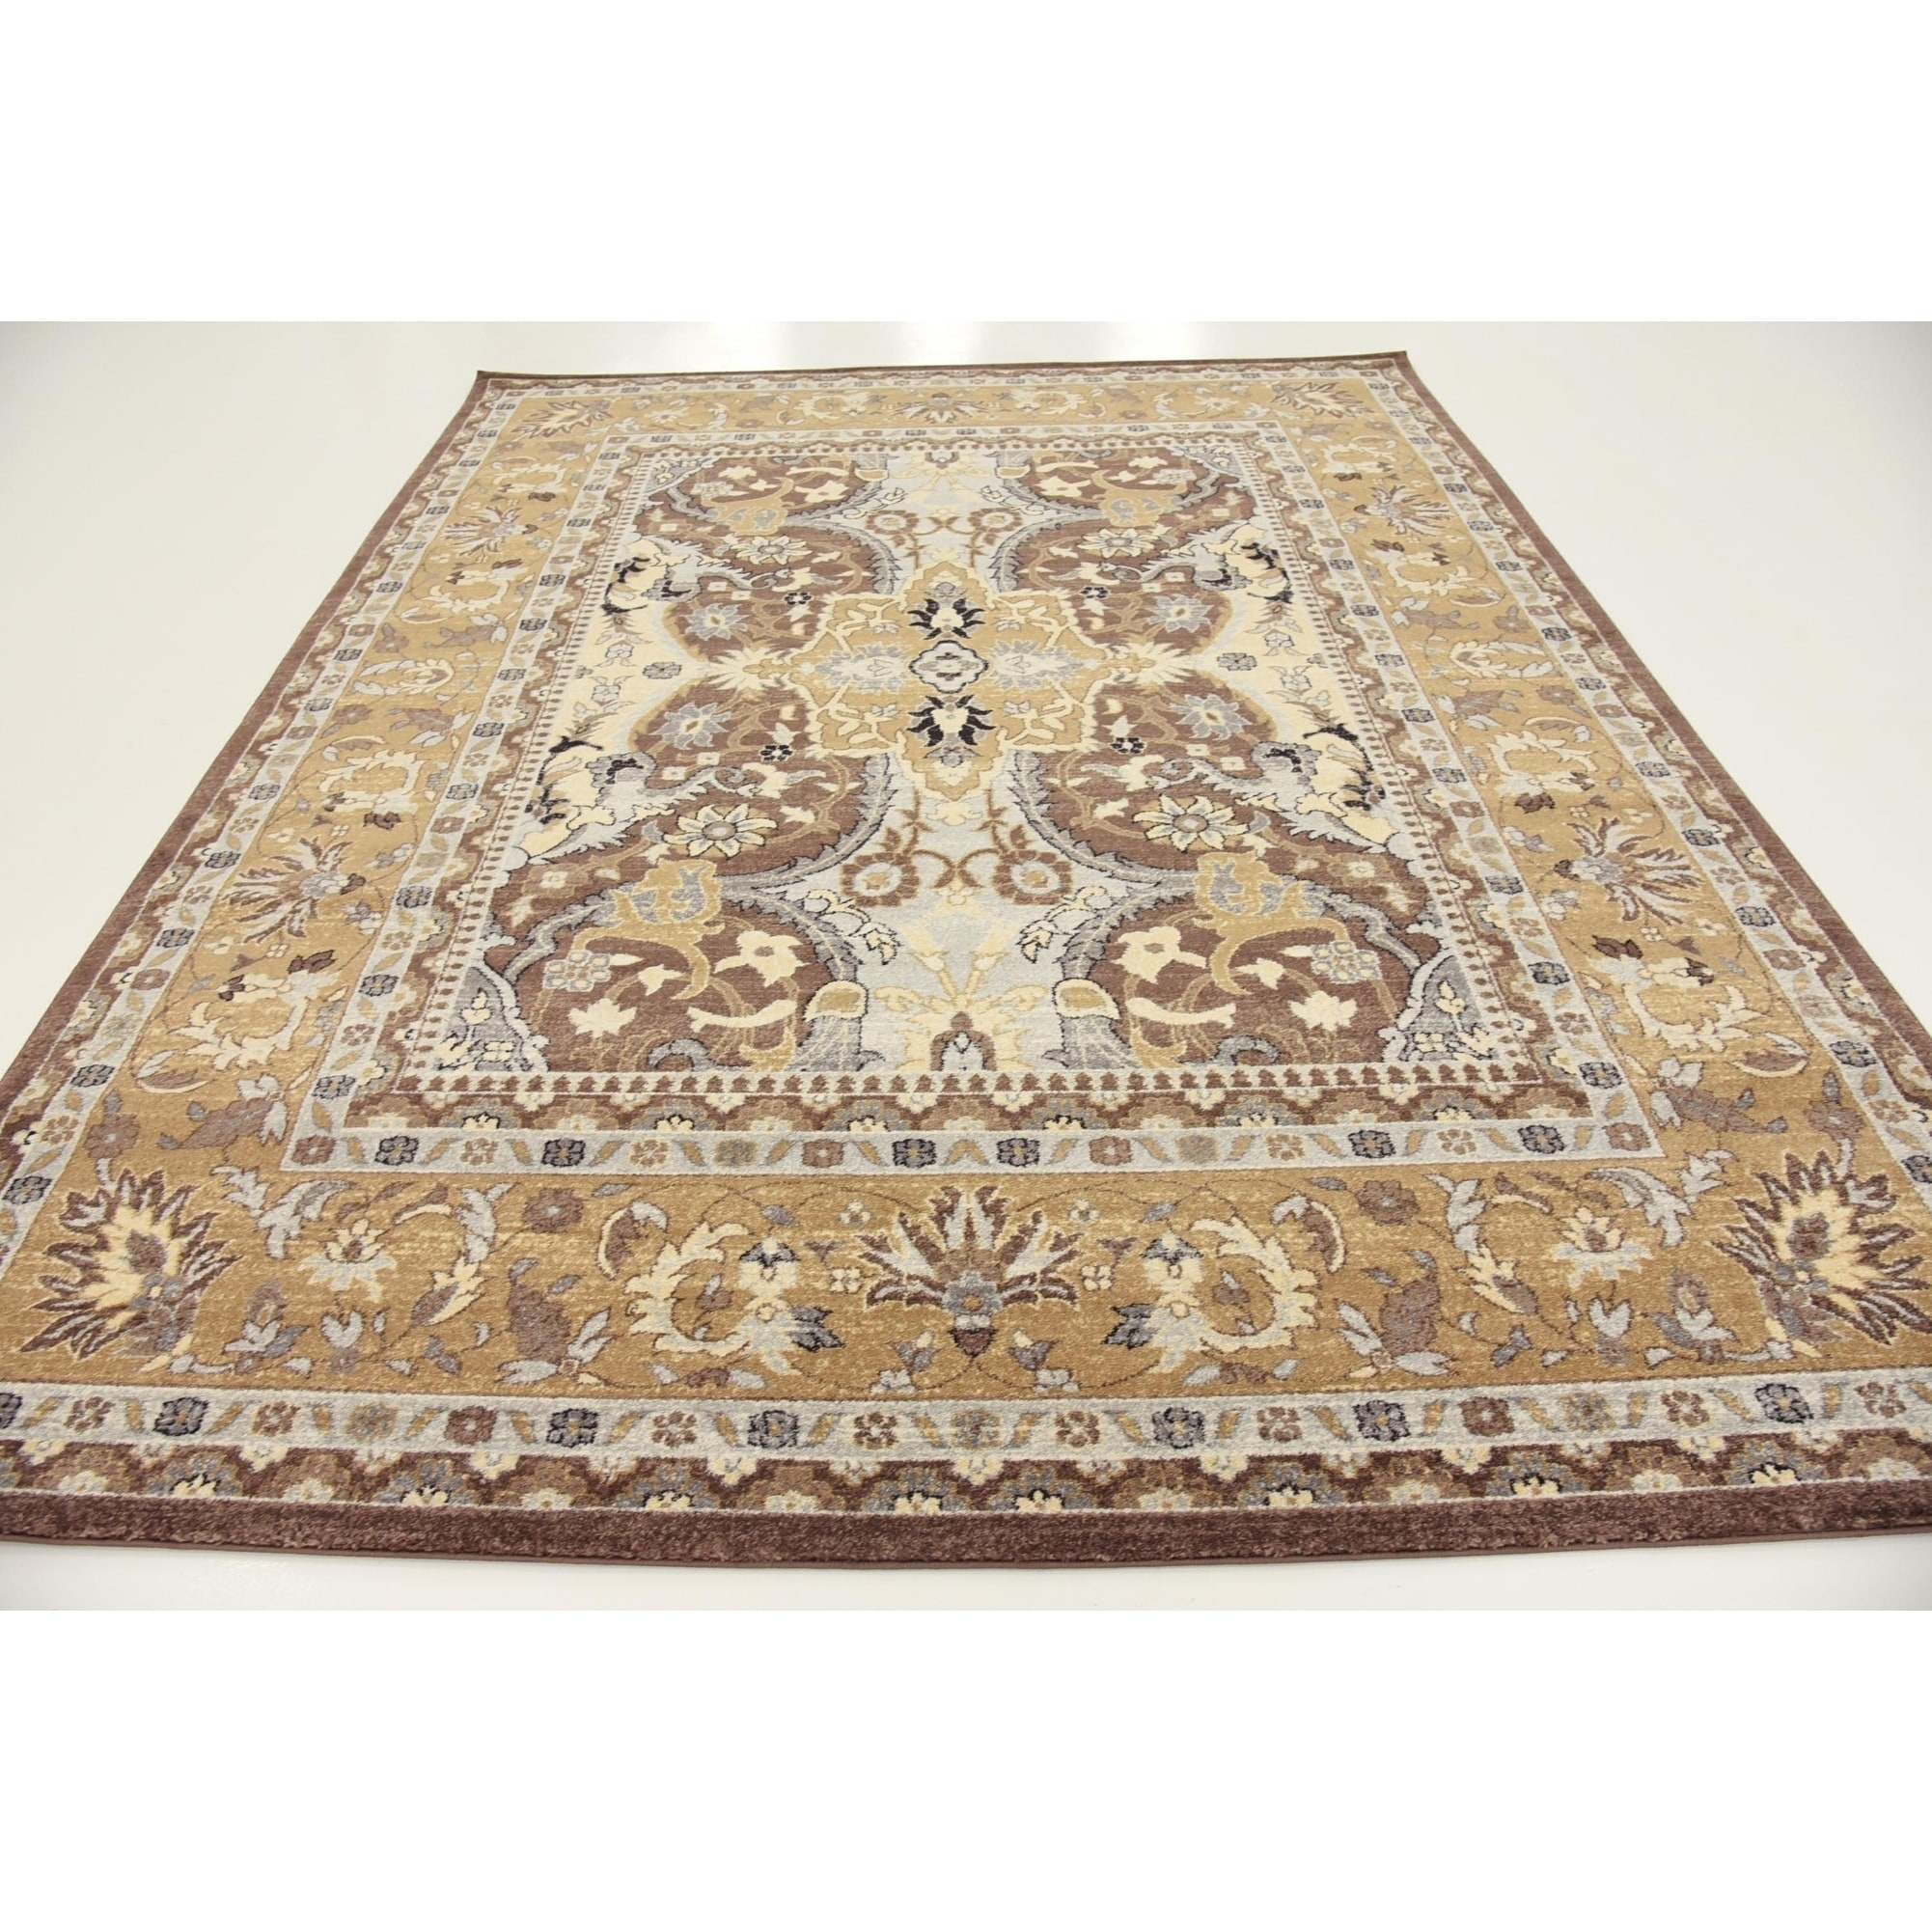 Turkish Heritage Tradition Abstract Area Rug 8 X 10 Free